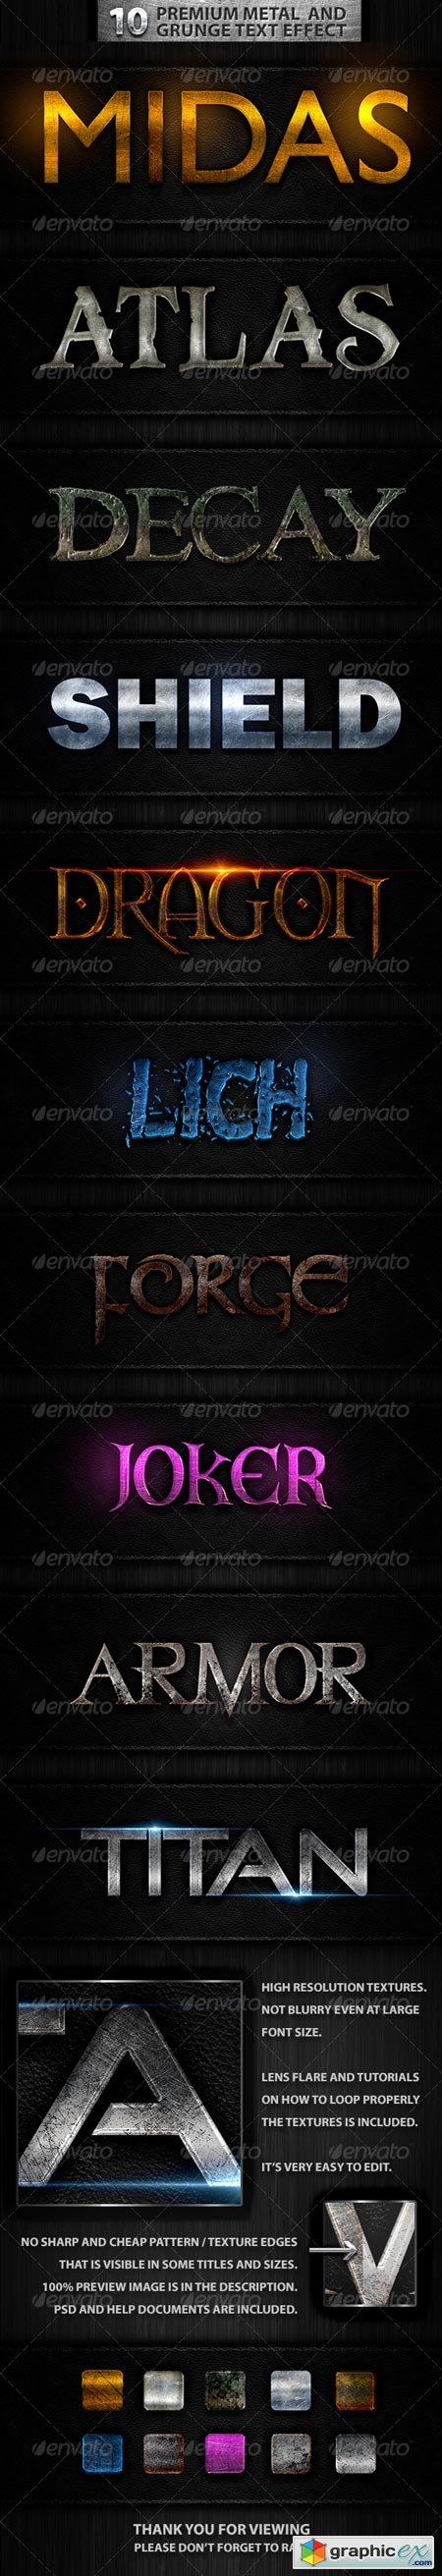 10 Premuim Metal and Grunge Text Effects 7481467